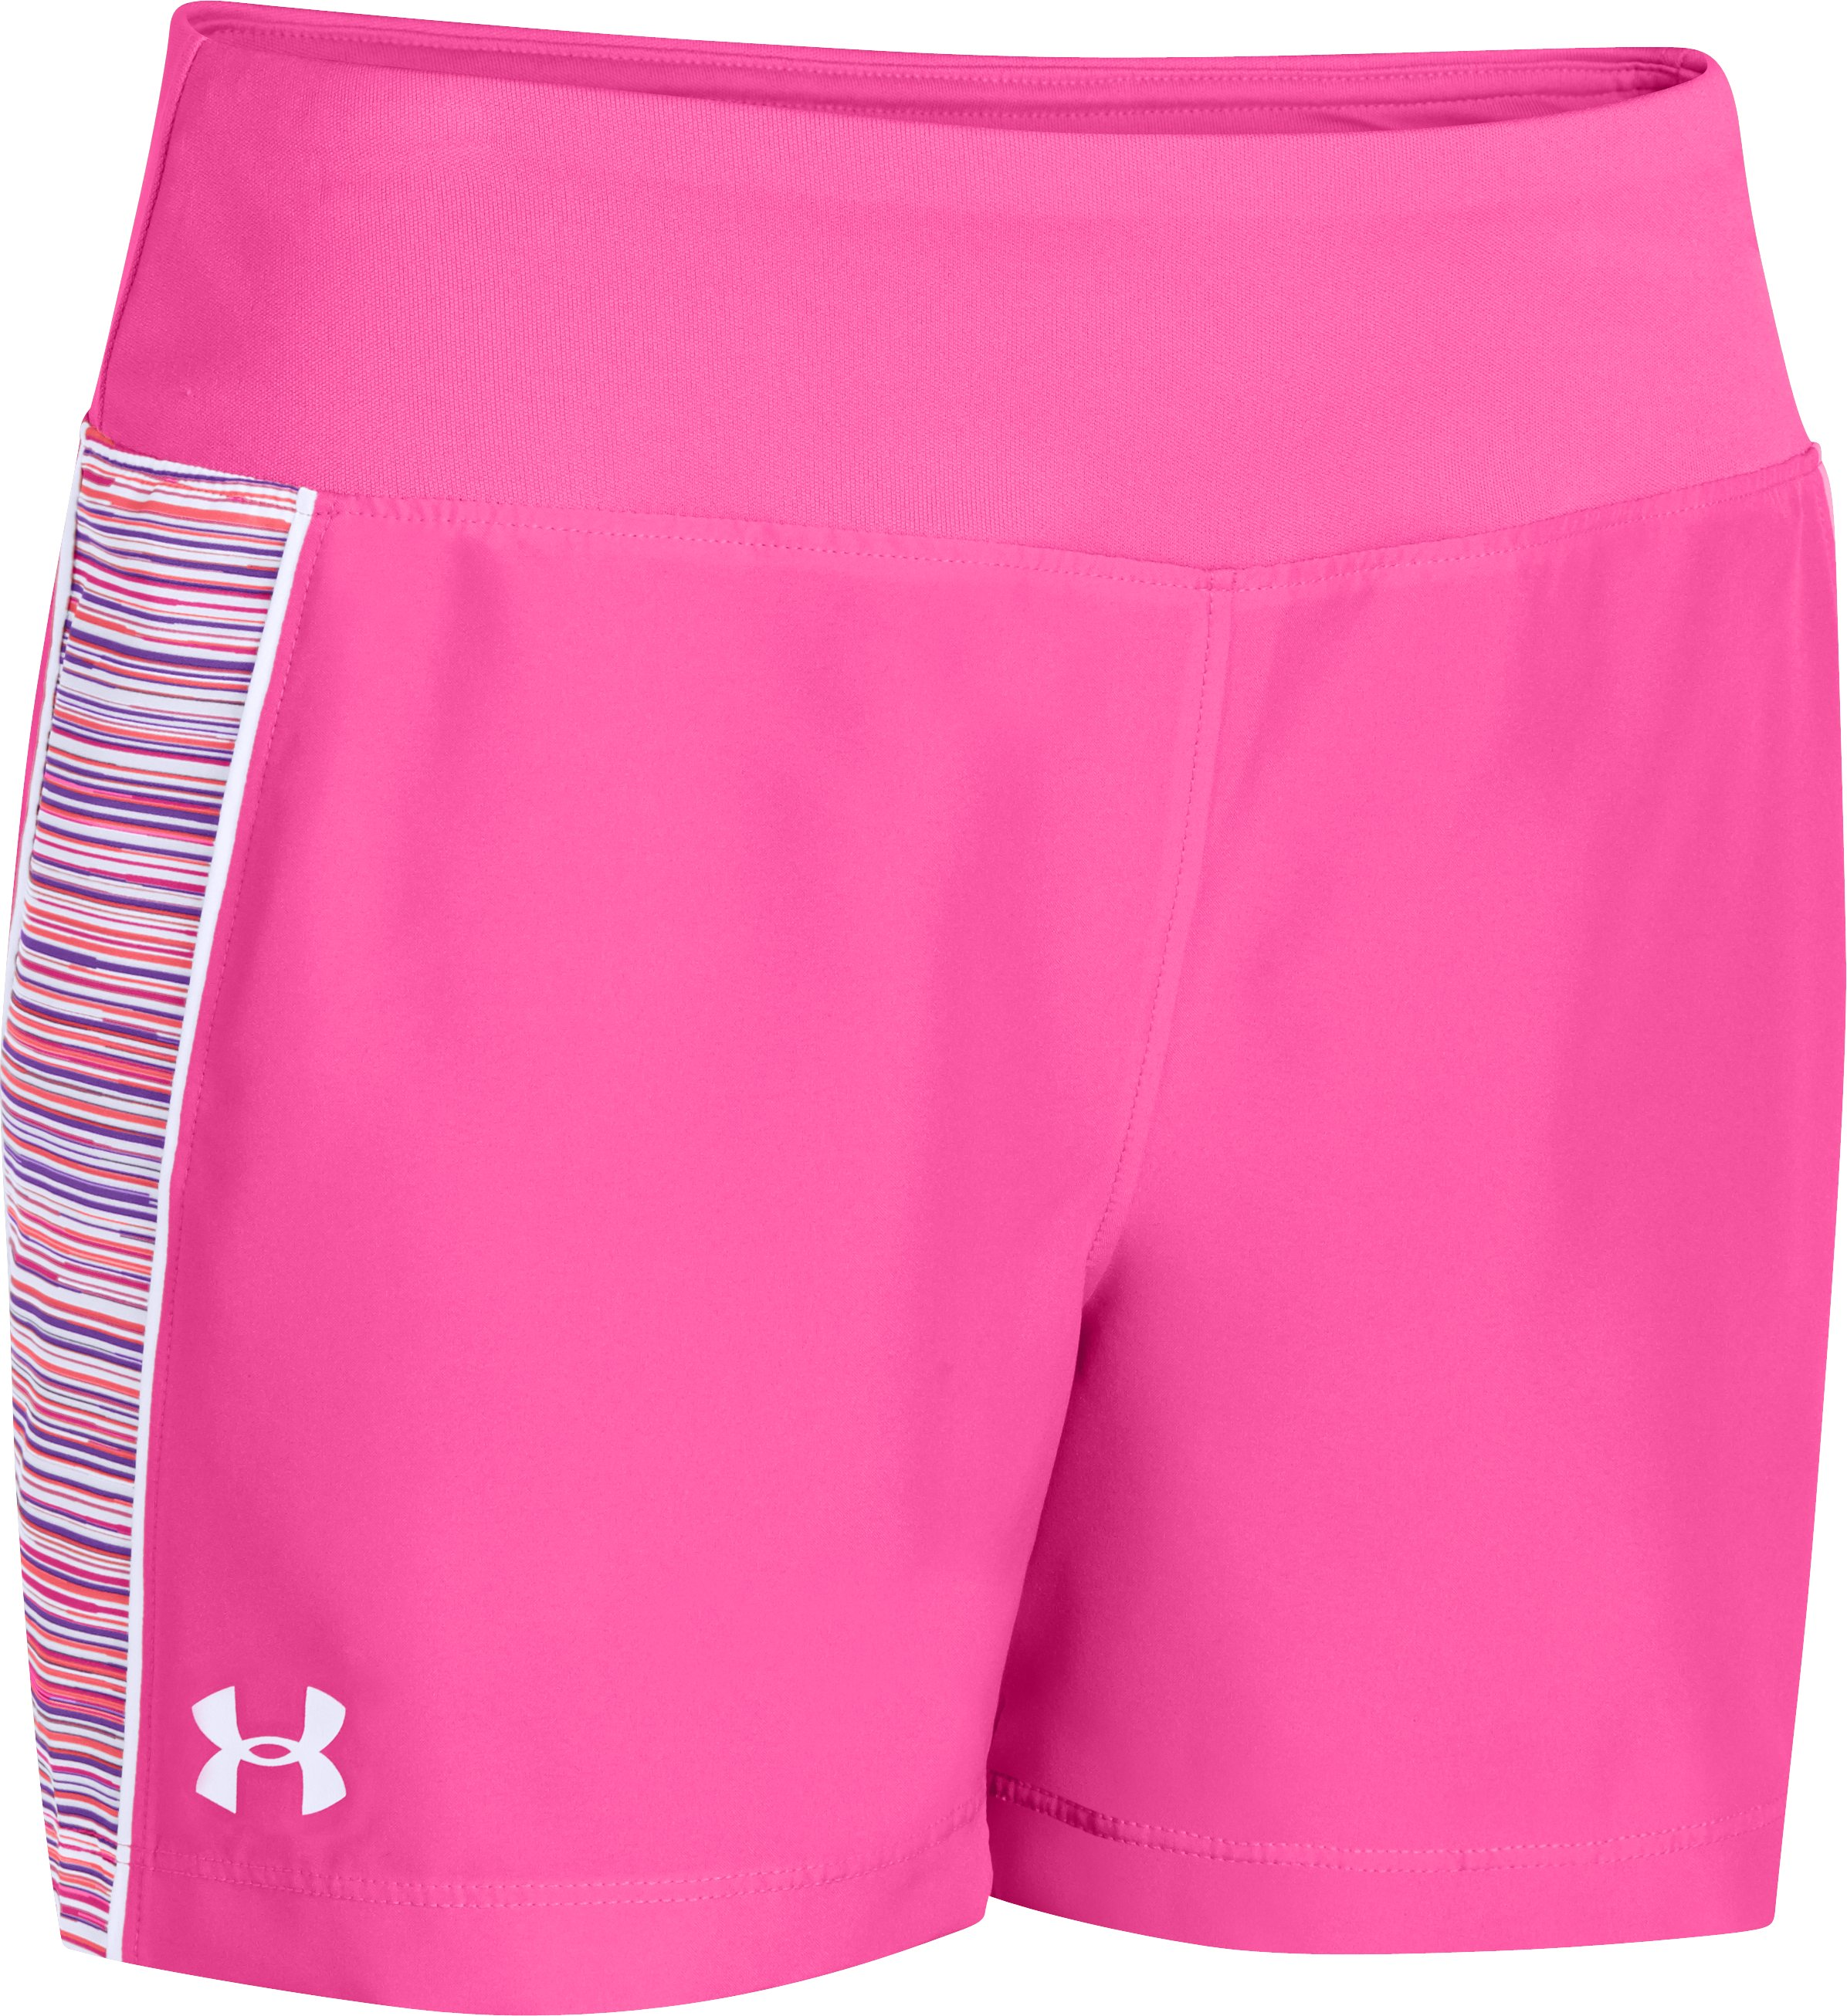 "Girls' UA Move It 3"" Shorts, CHAOS, zoomed image"